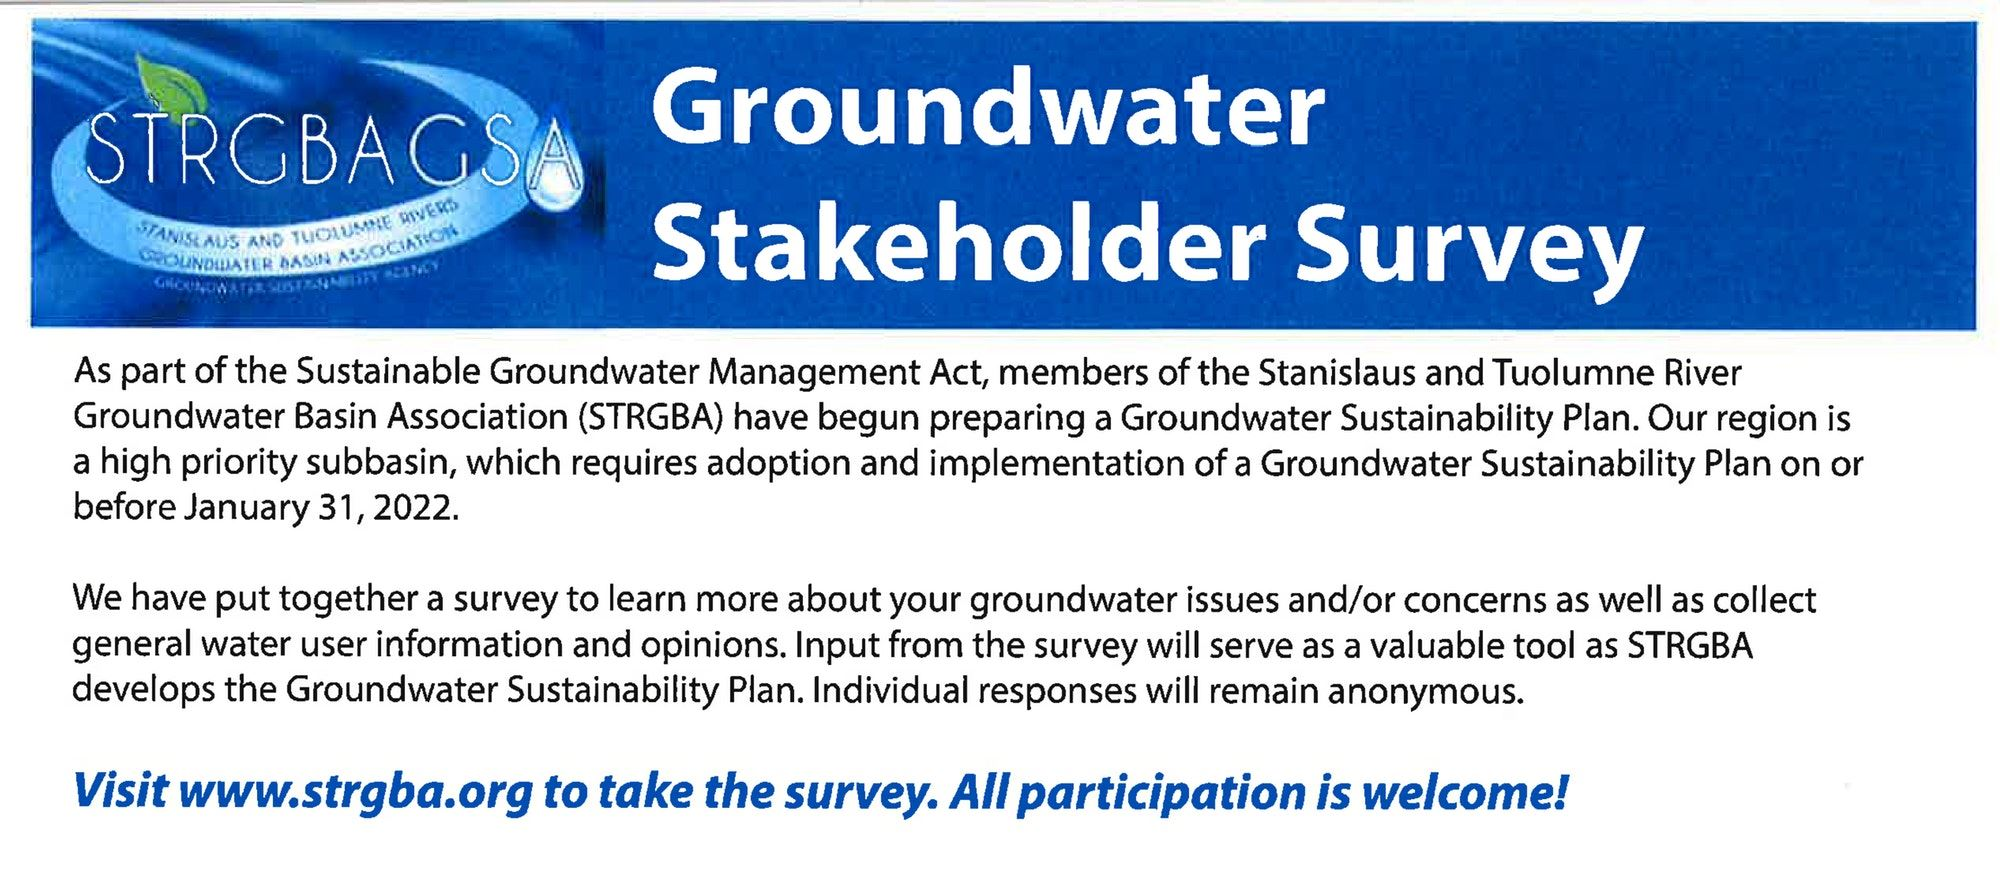 STRGBA Groundwater Stakeholder Survey